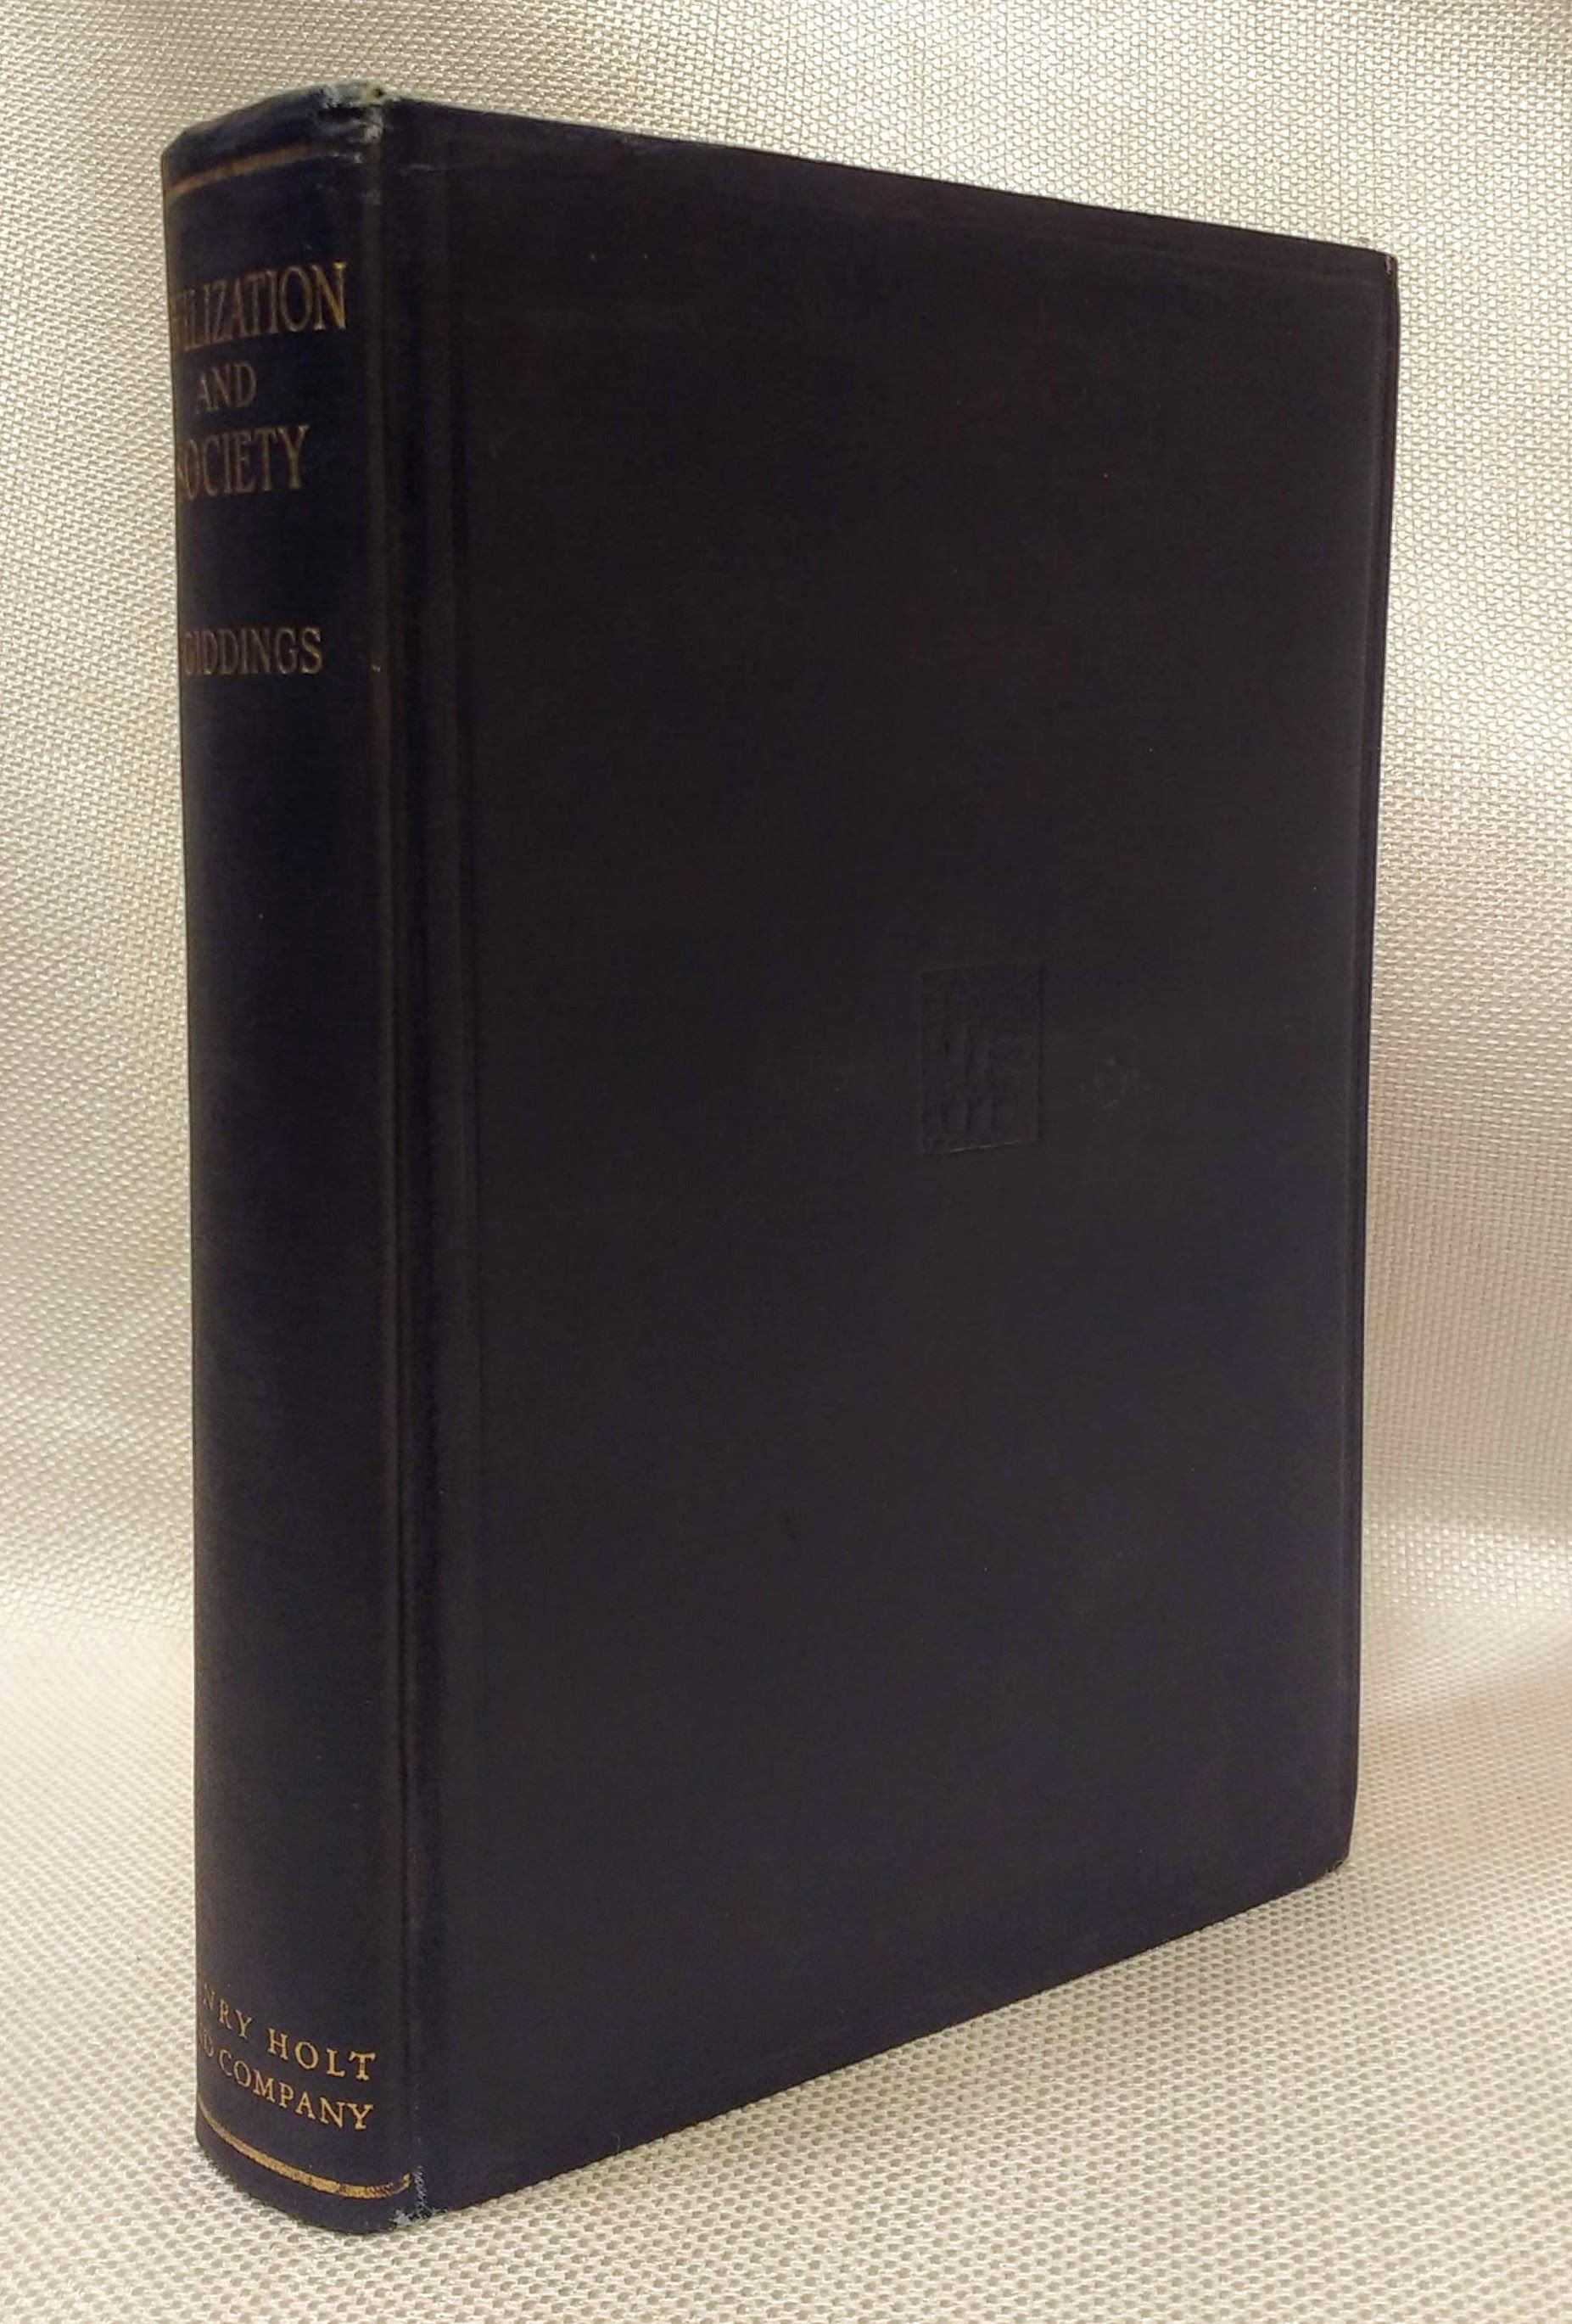 CIVILIZATION AND SOCIETY An Account of the Development and Behavior of Human Society, Giddings